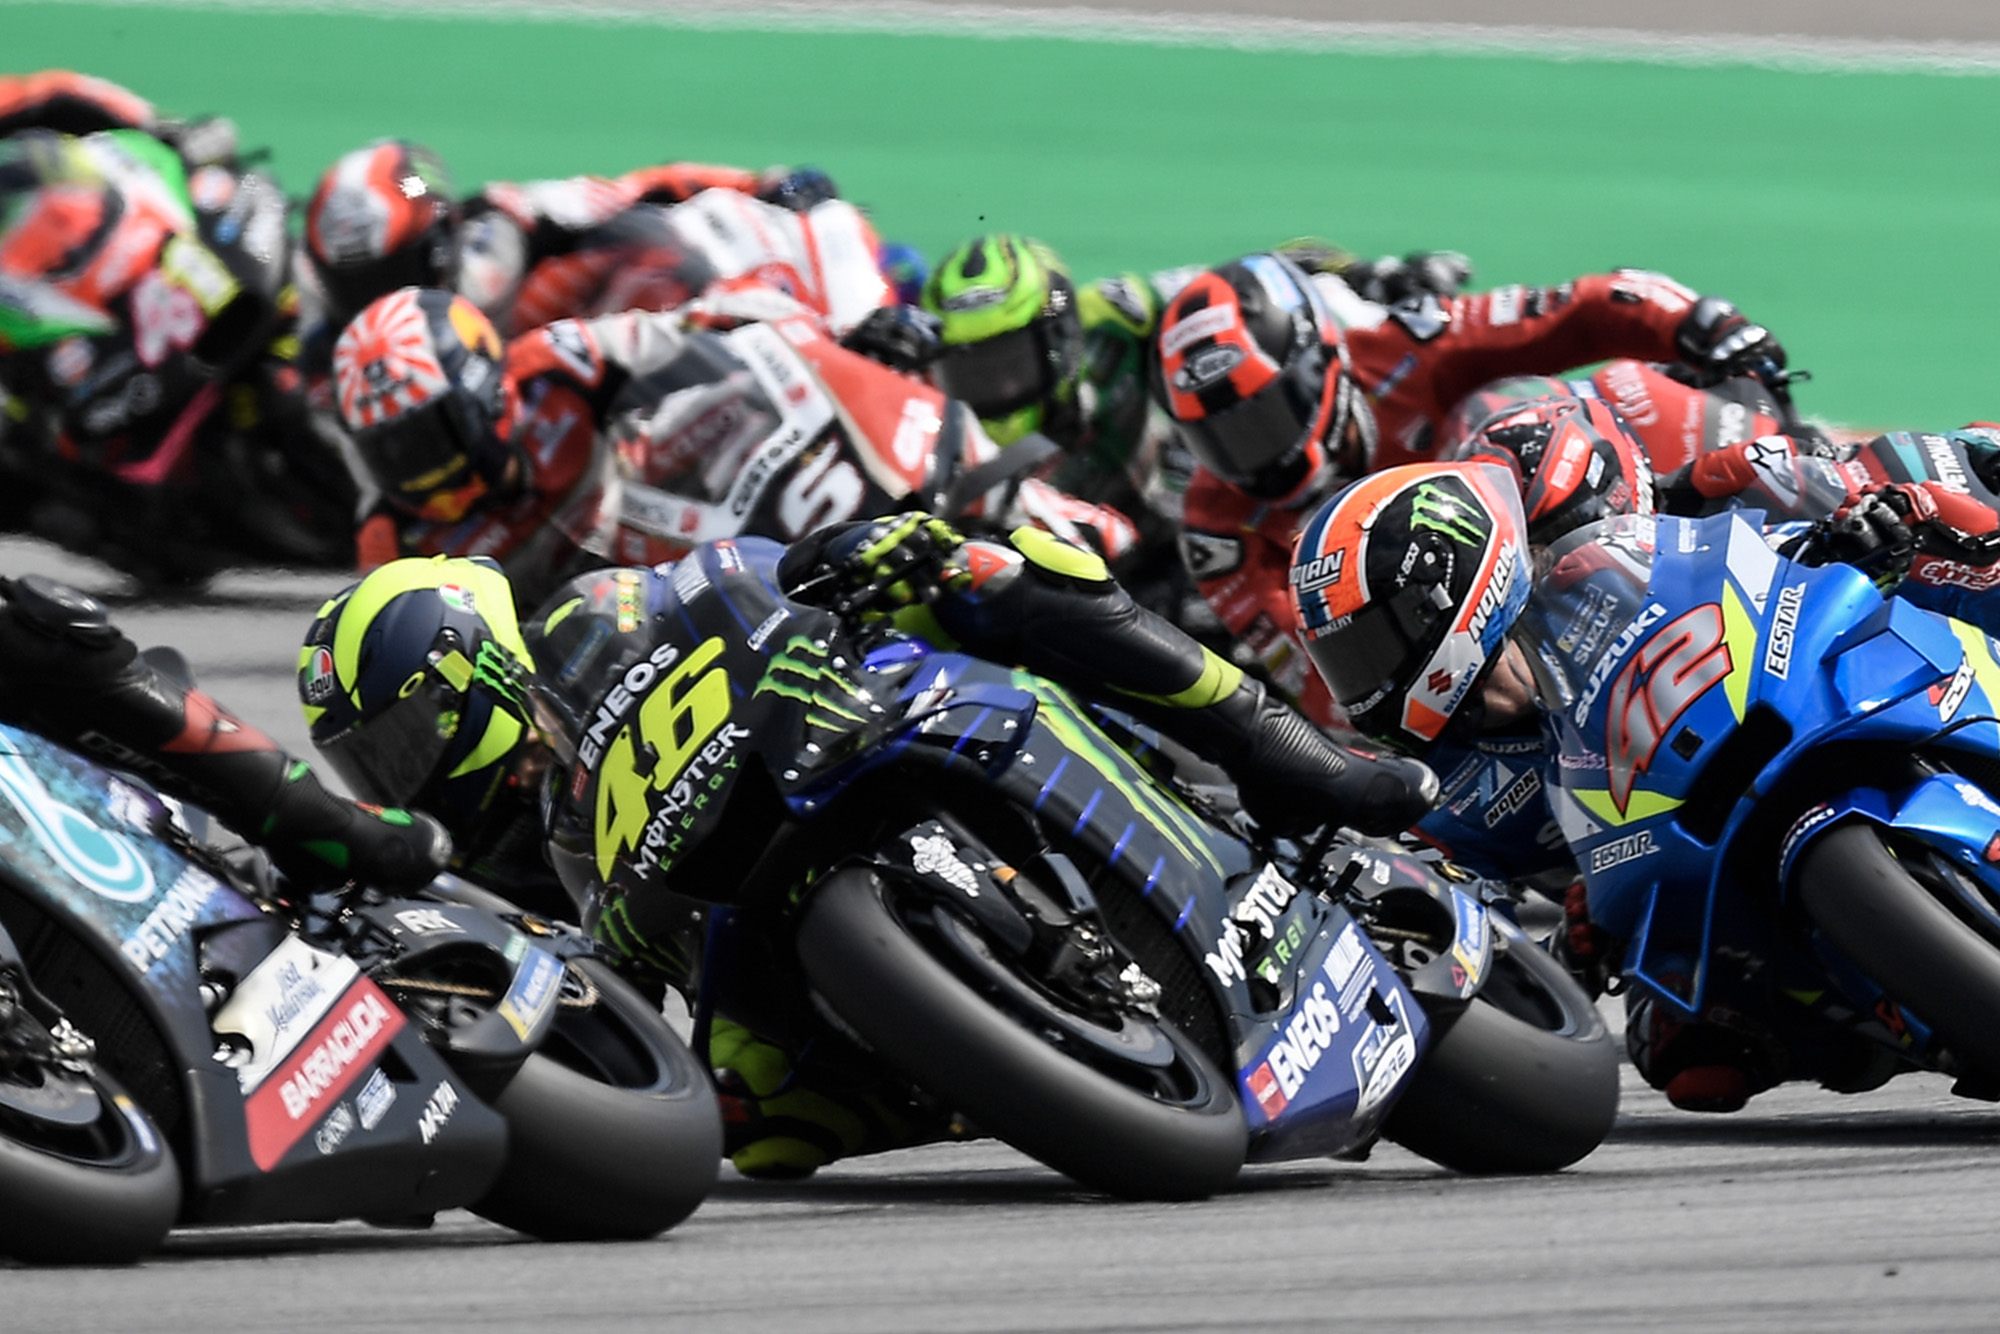 Rossi fighting in the pack in 2019